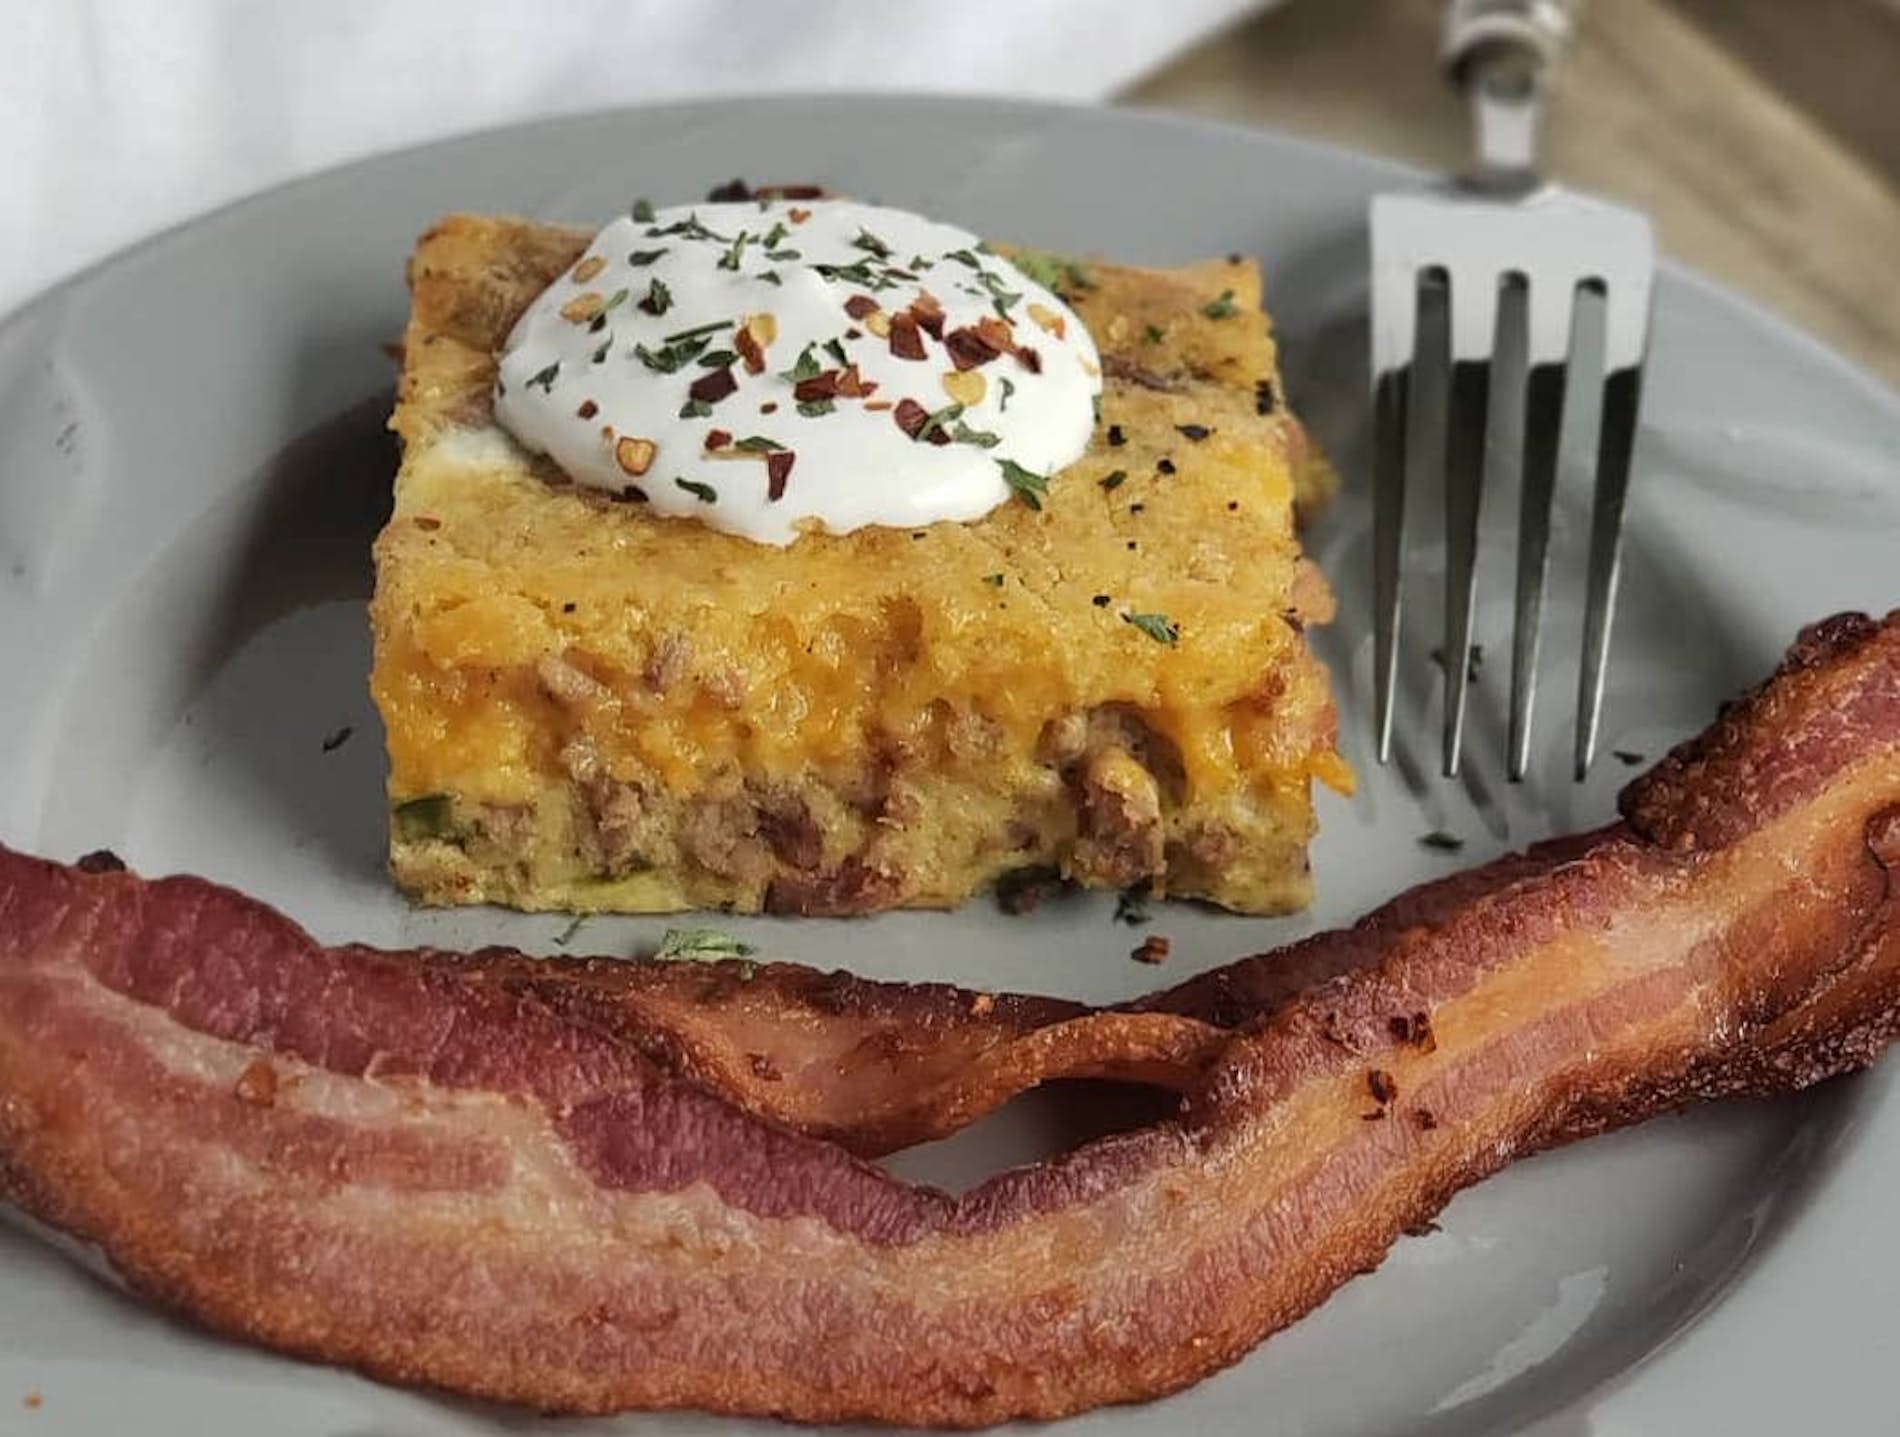 Sausage, Bacon, Egg & Cheese Smoked Breakfast Casserole